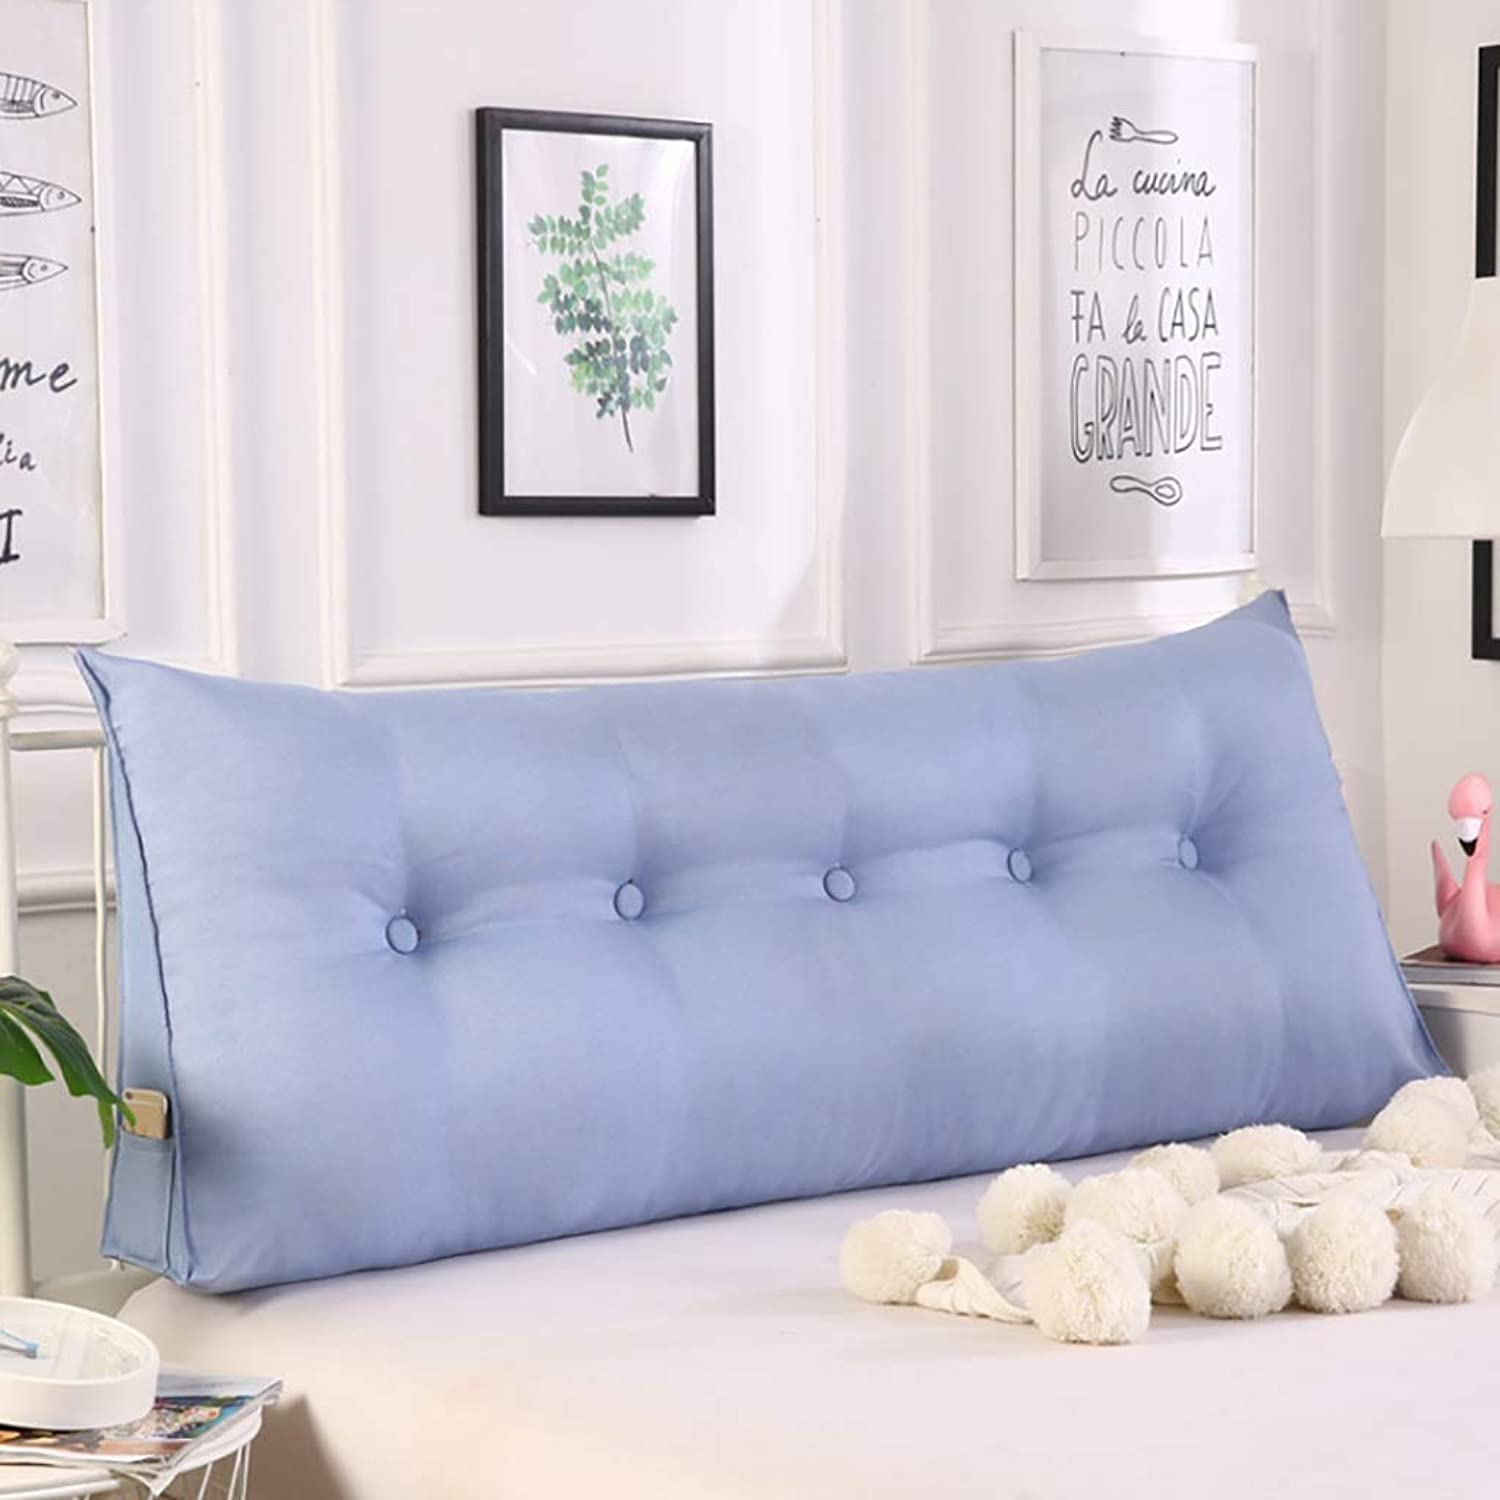 Reading pillow Back support pillow Headboard Bedside Cushion Soft Case Sofa Large Double Beds Back Household Washable, (805020cm,1005020cm,1205020cm) ( color   F , Size   1205020cm )